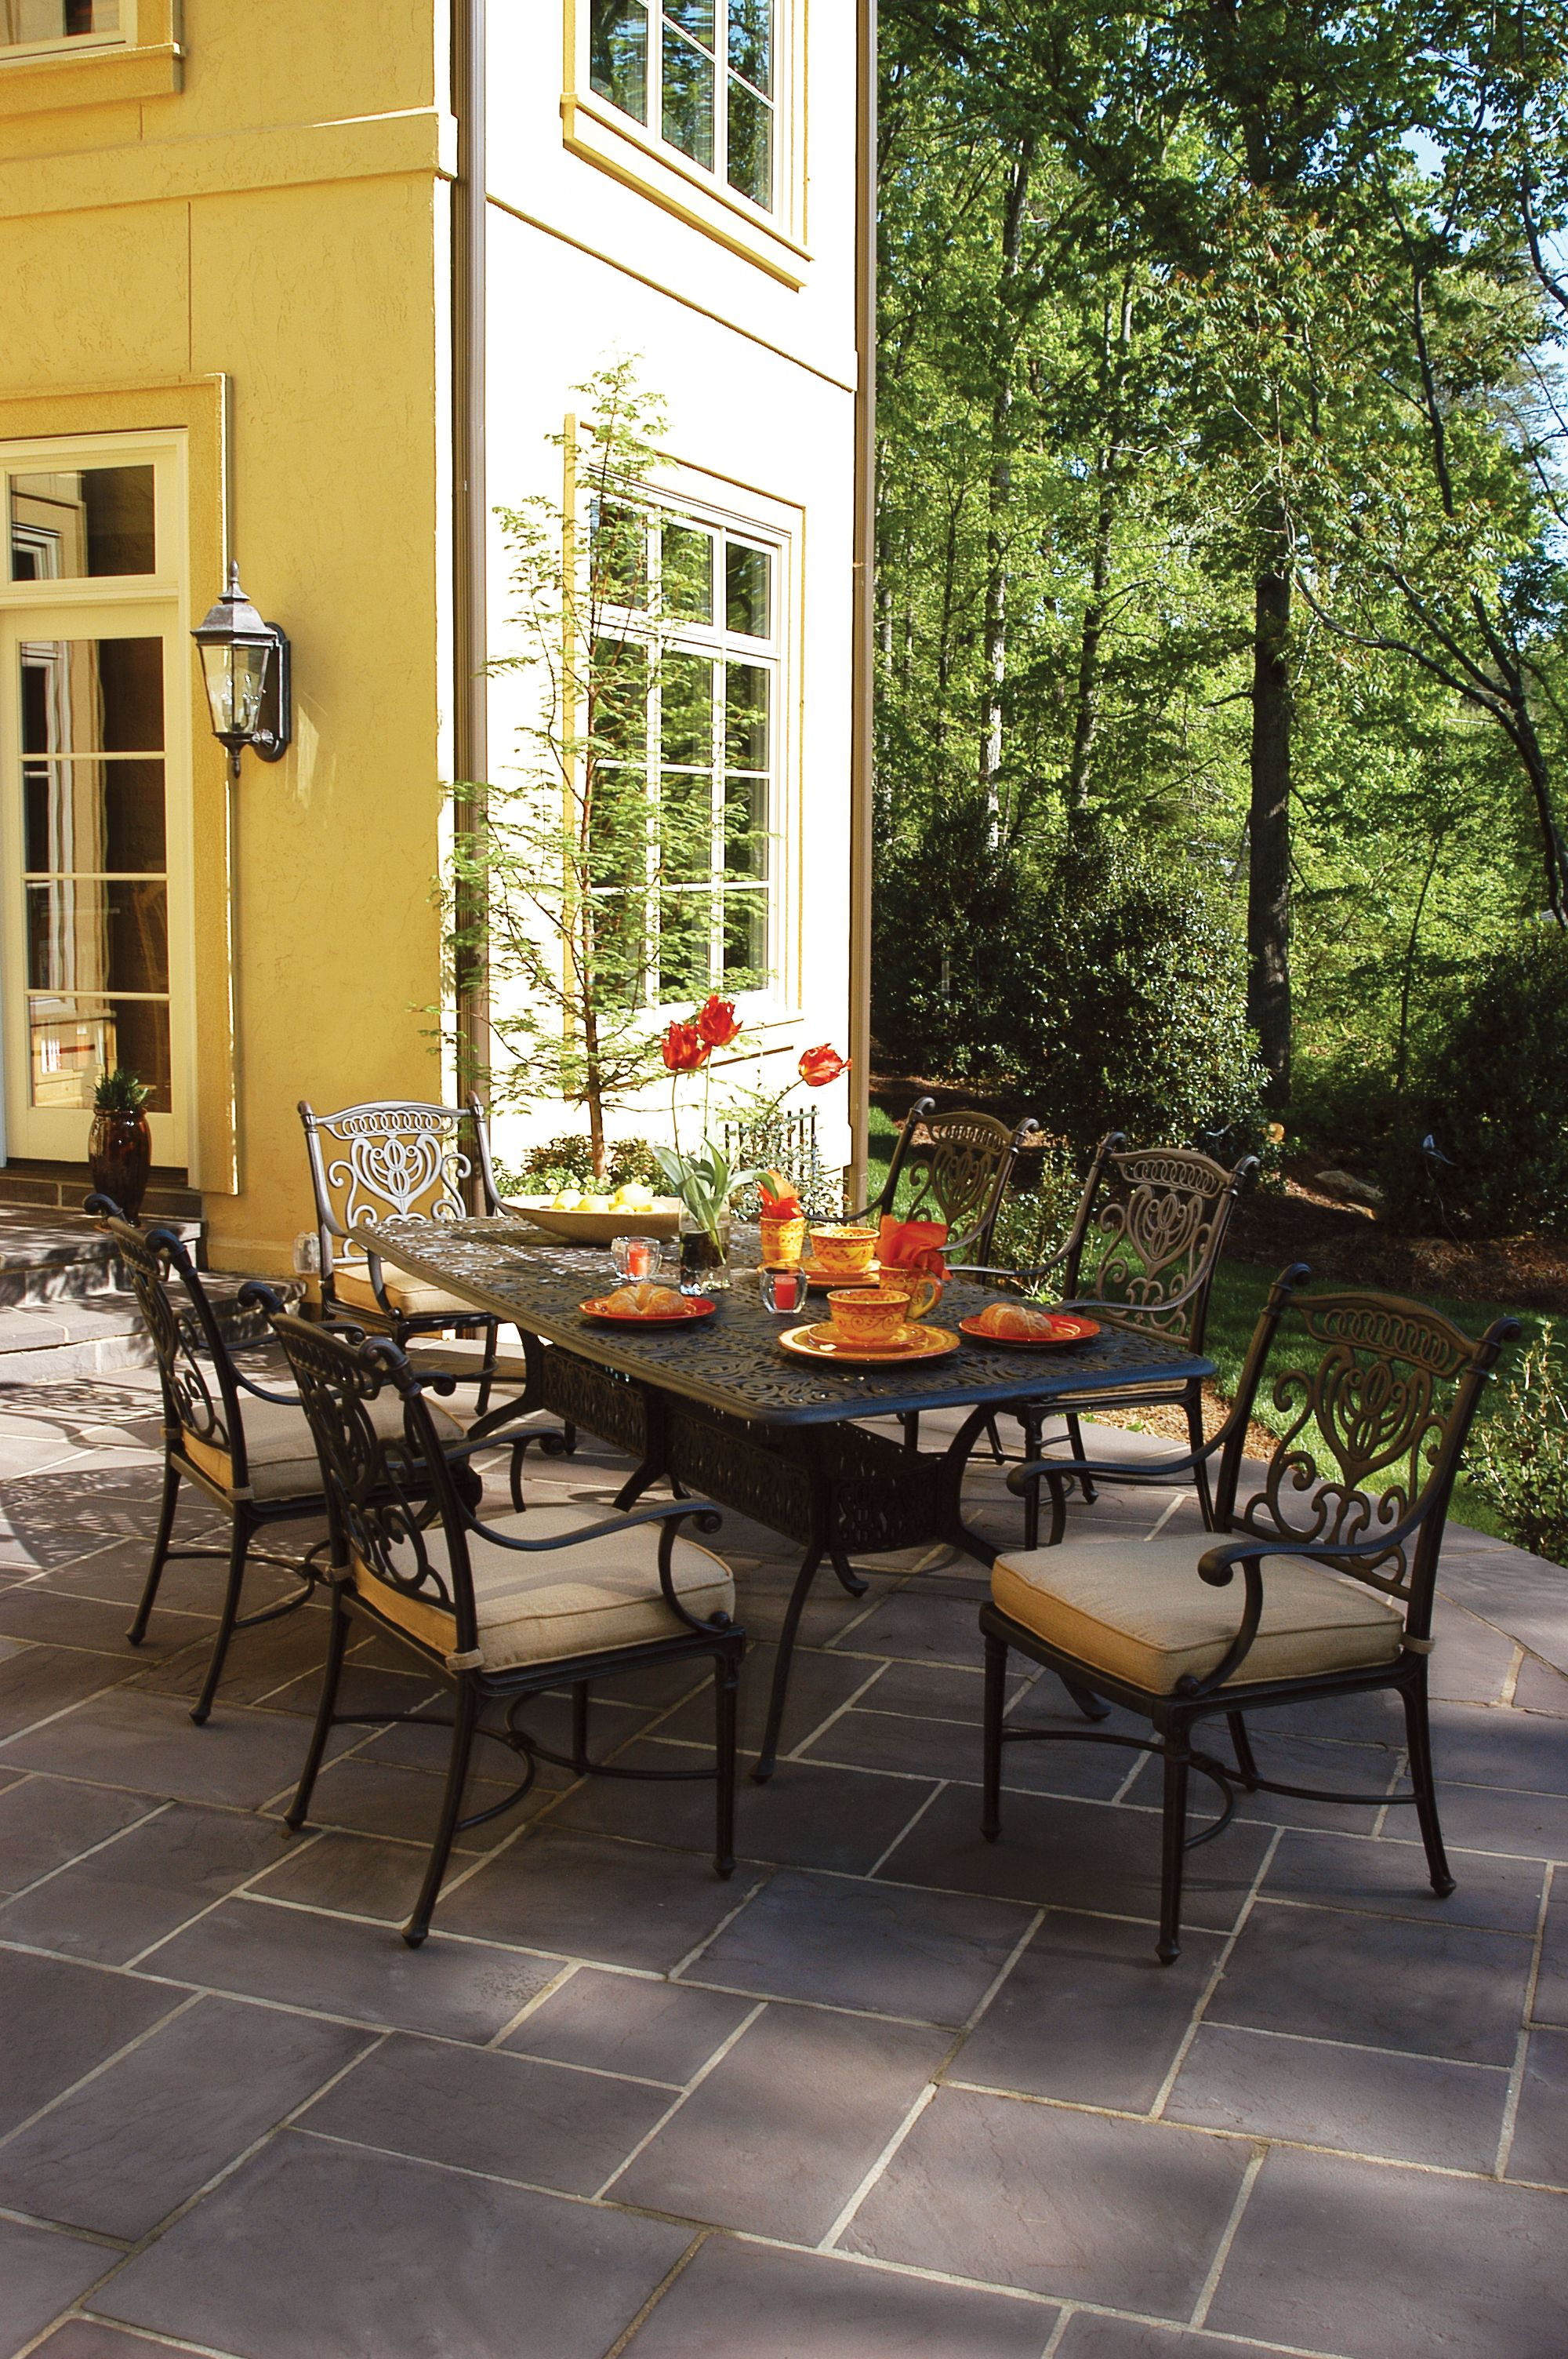 Hanamint Grand Tuscany Collection Rust proof cast aluminum patio